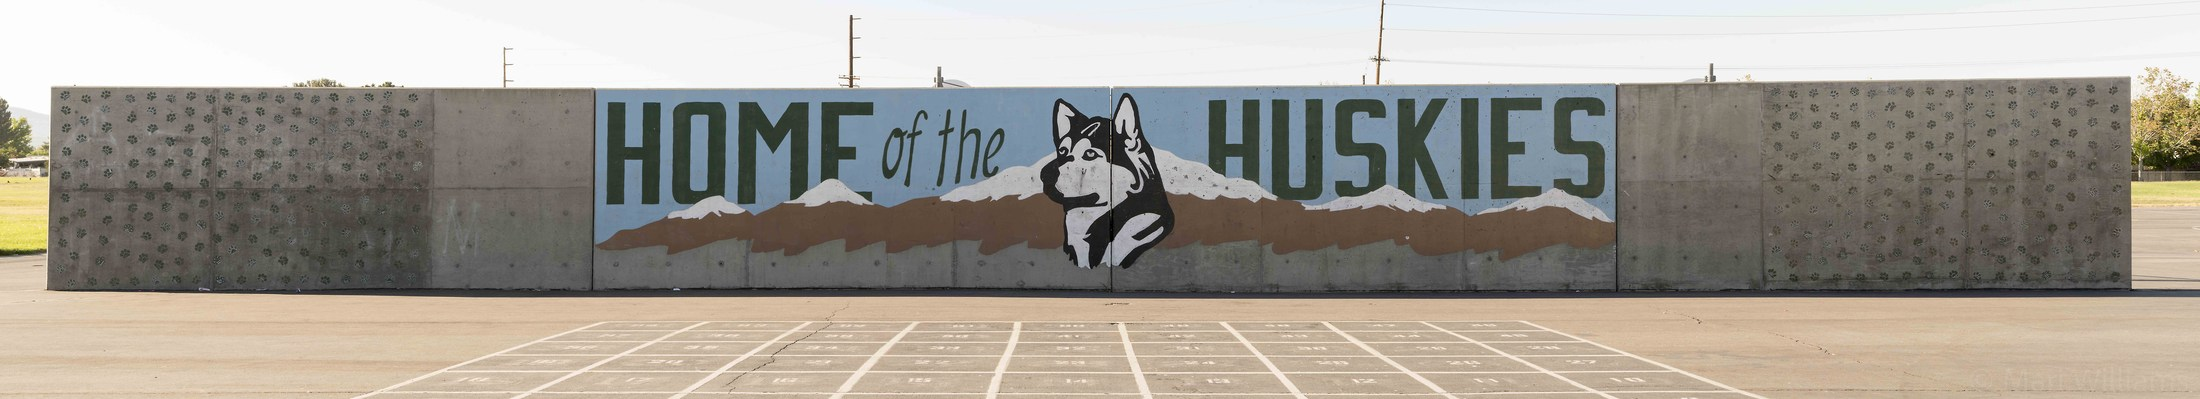 Home of the Huskies Mural